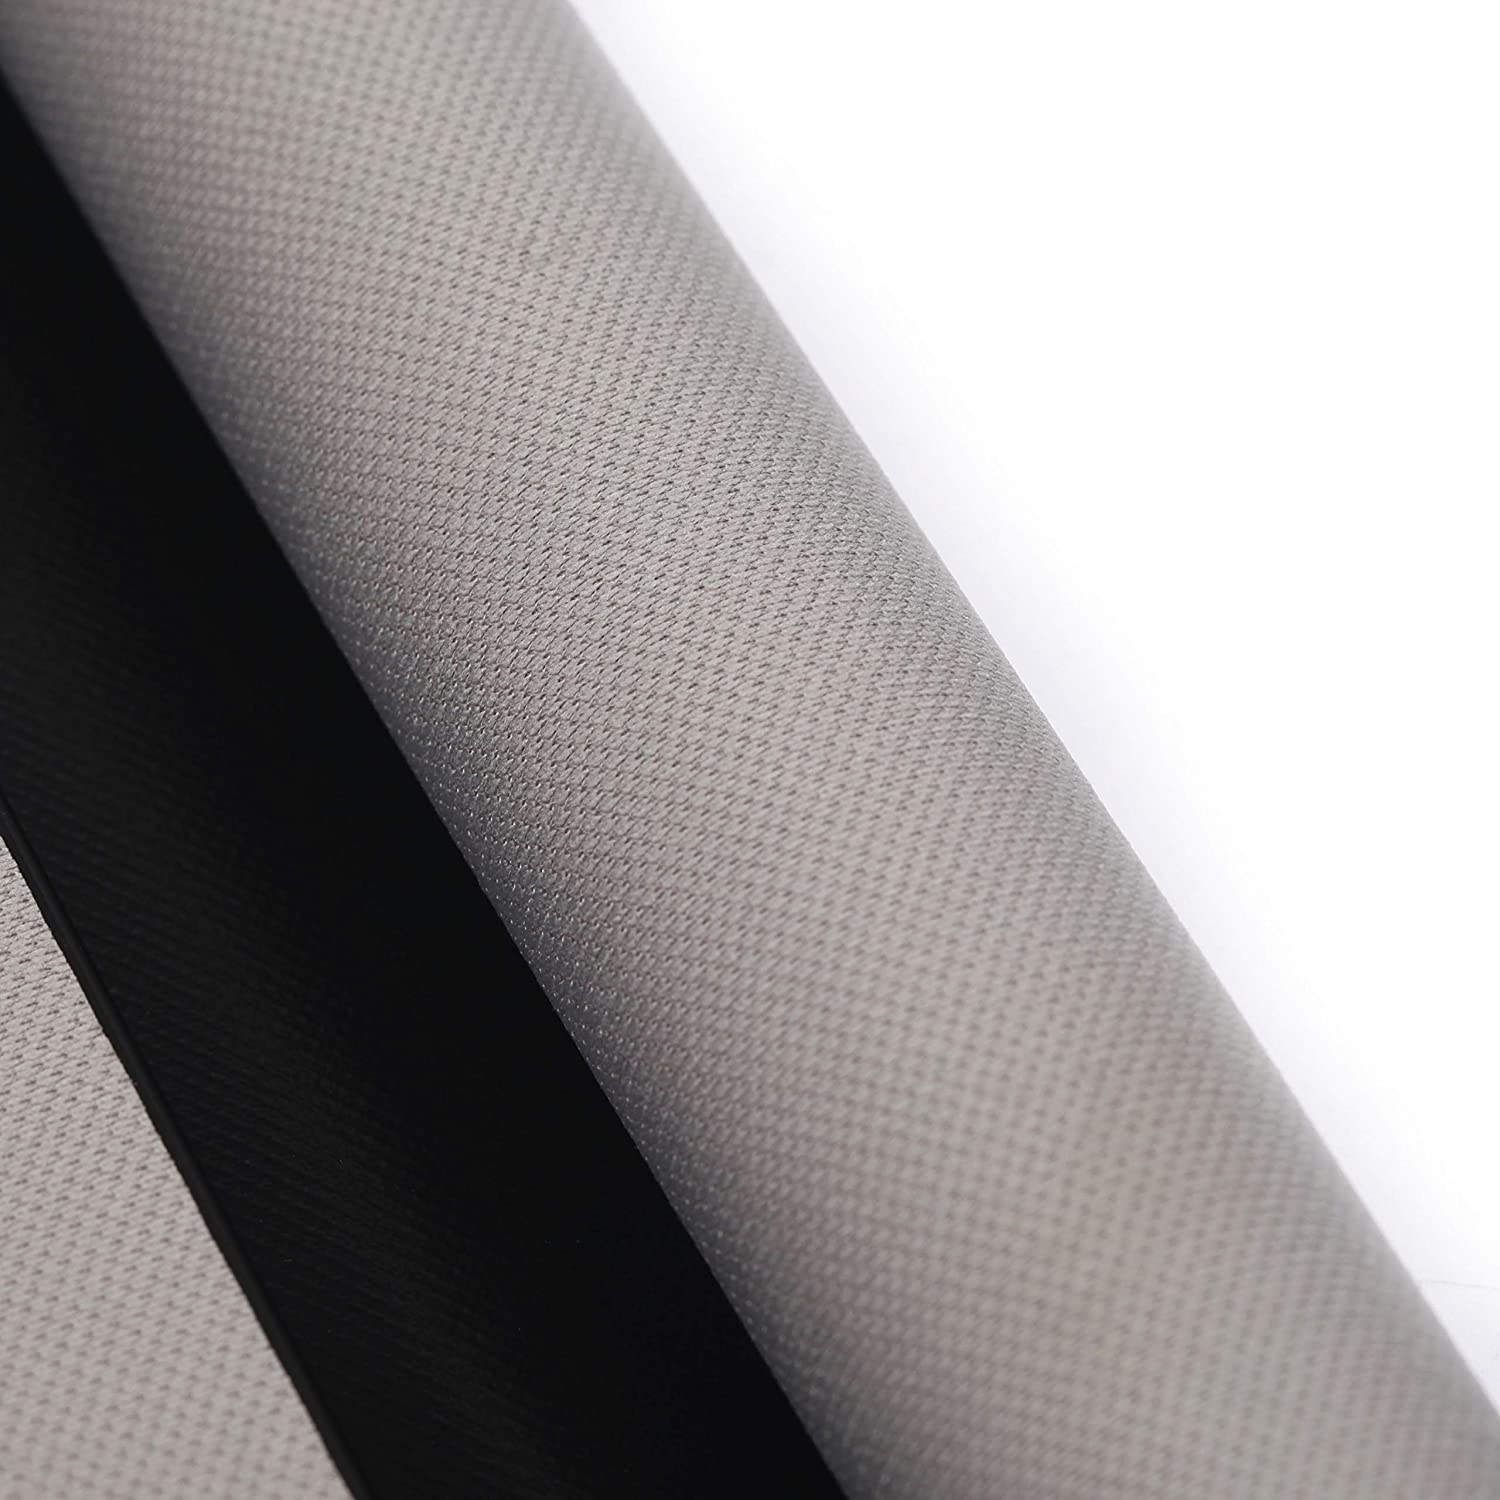 Beige Sun Shade Sunroof Curtain Cover Visor 54107237592 Fit For 2010-2019 5/Series